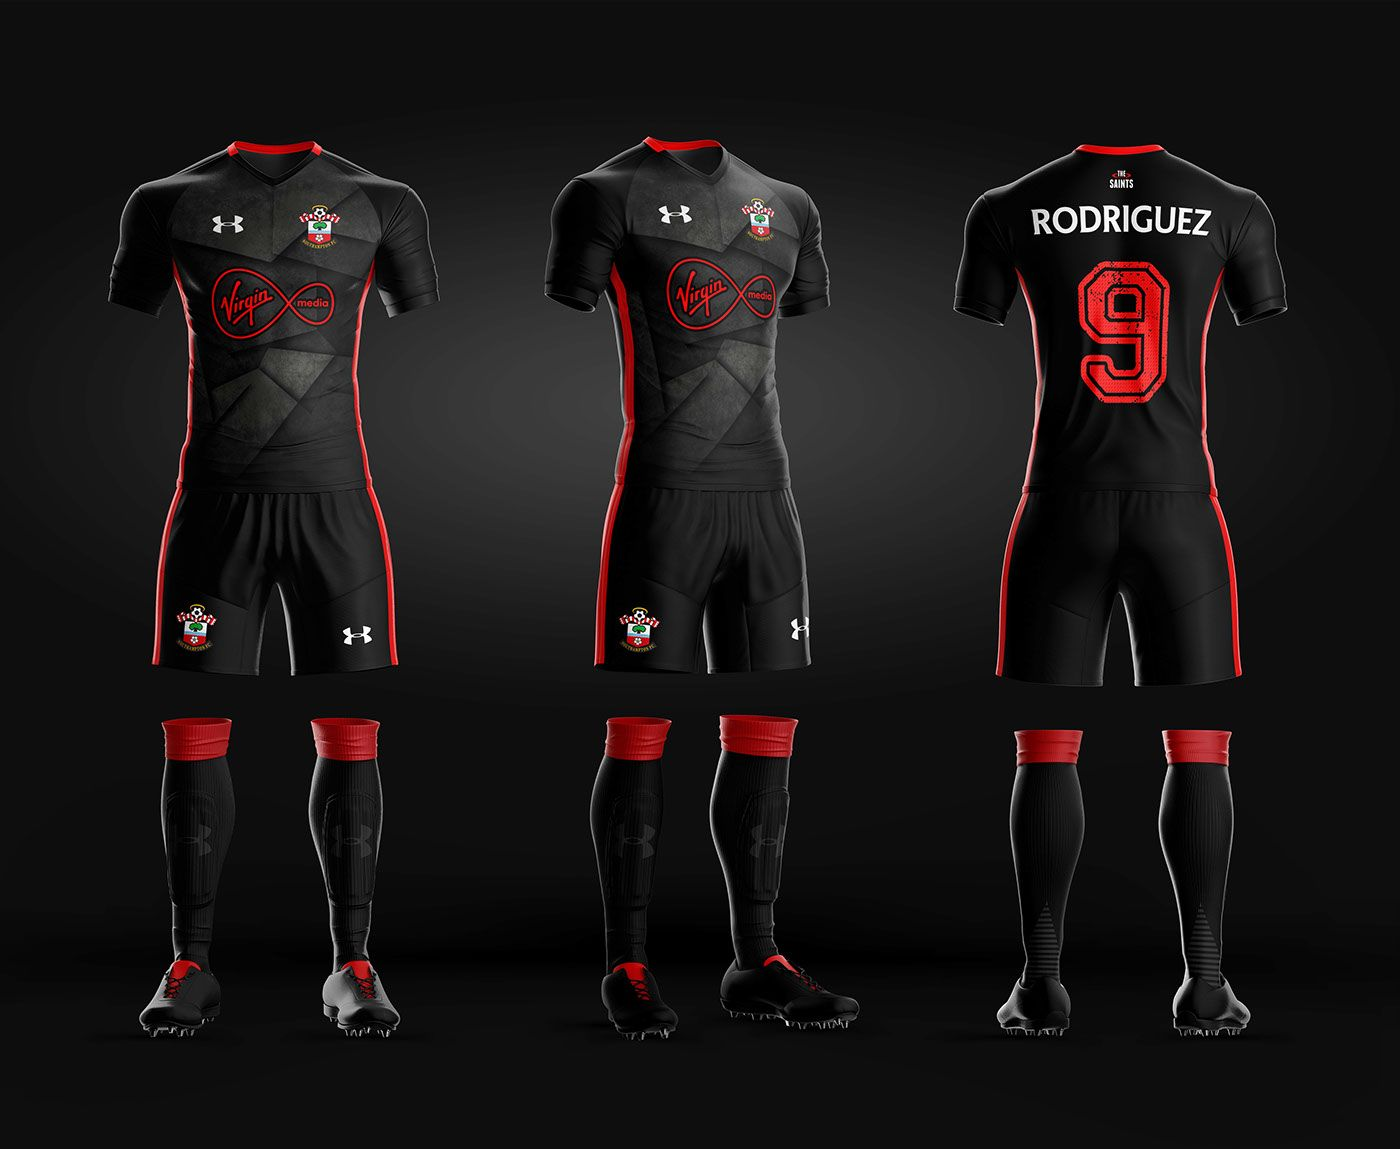 Uk Kits Concepts On Behance Soccer Uniforms Design Football Outfits Sports Jersey Design